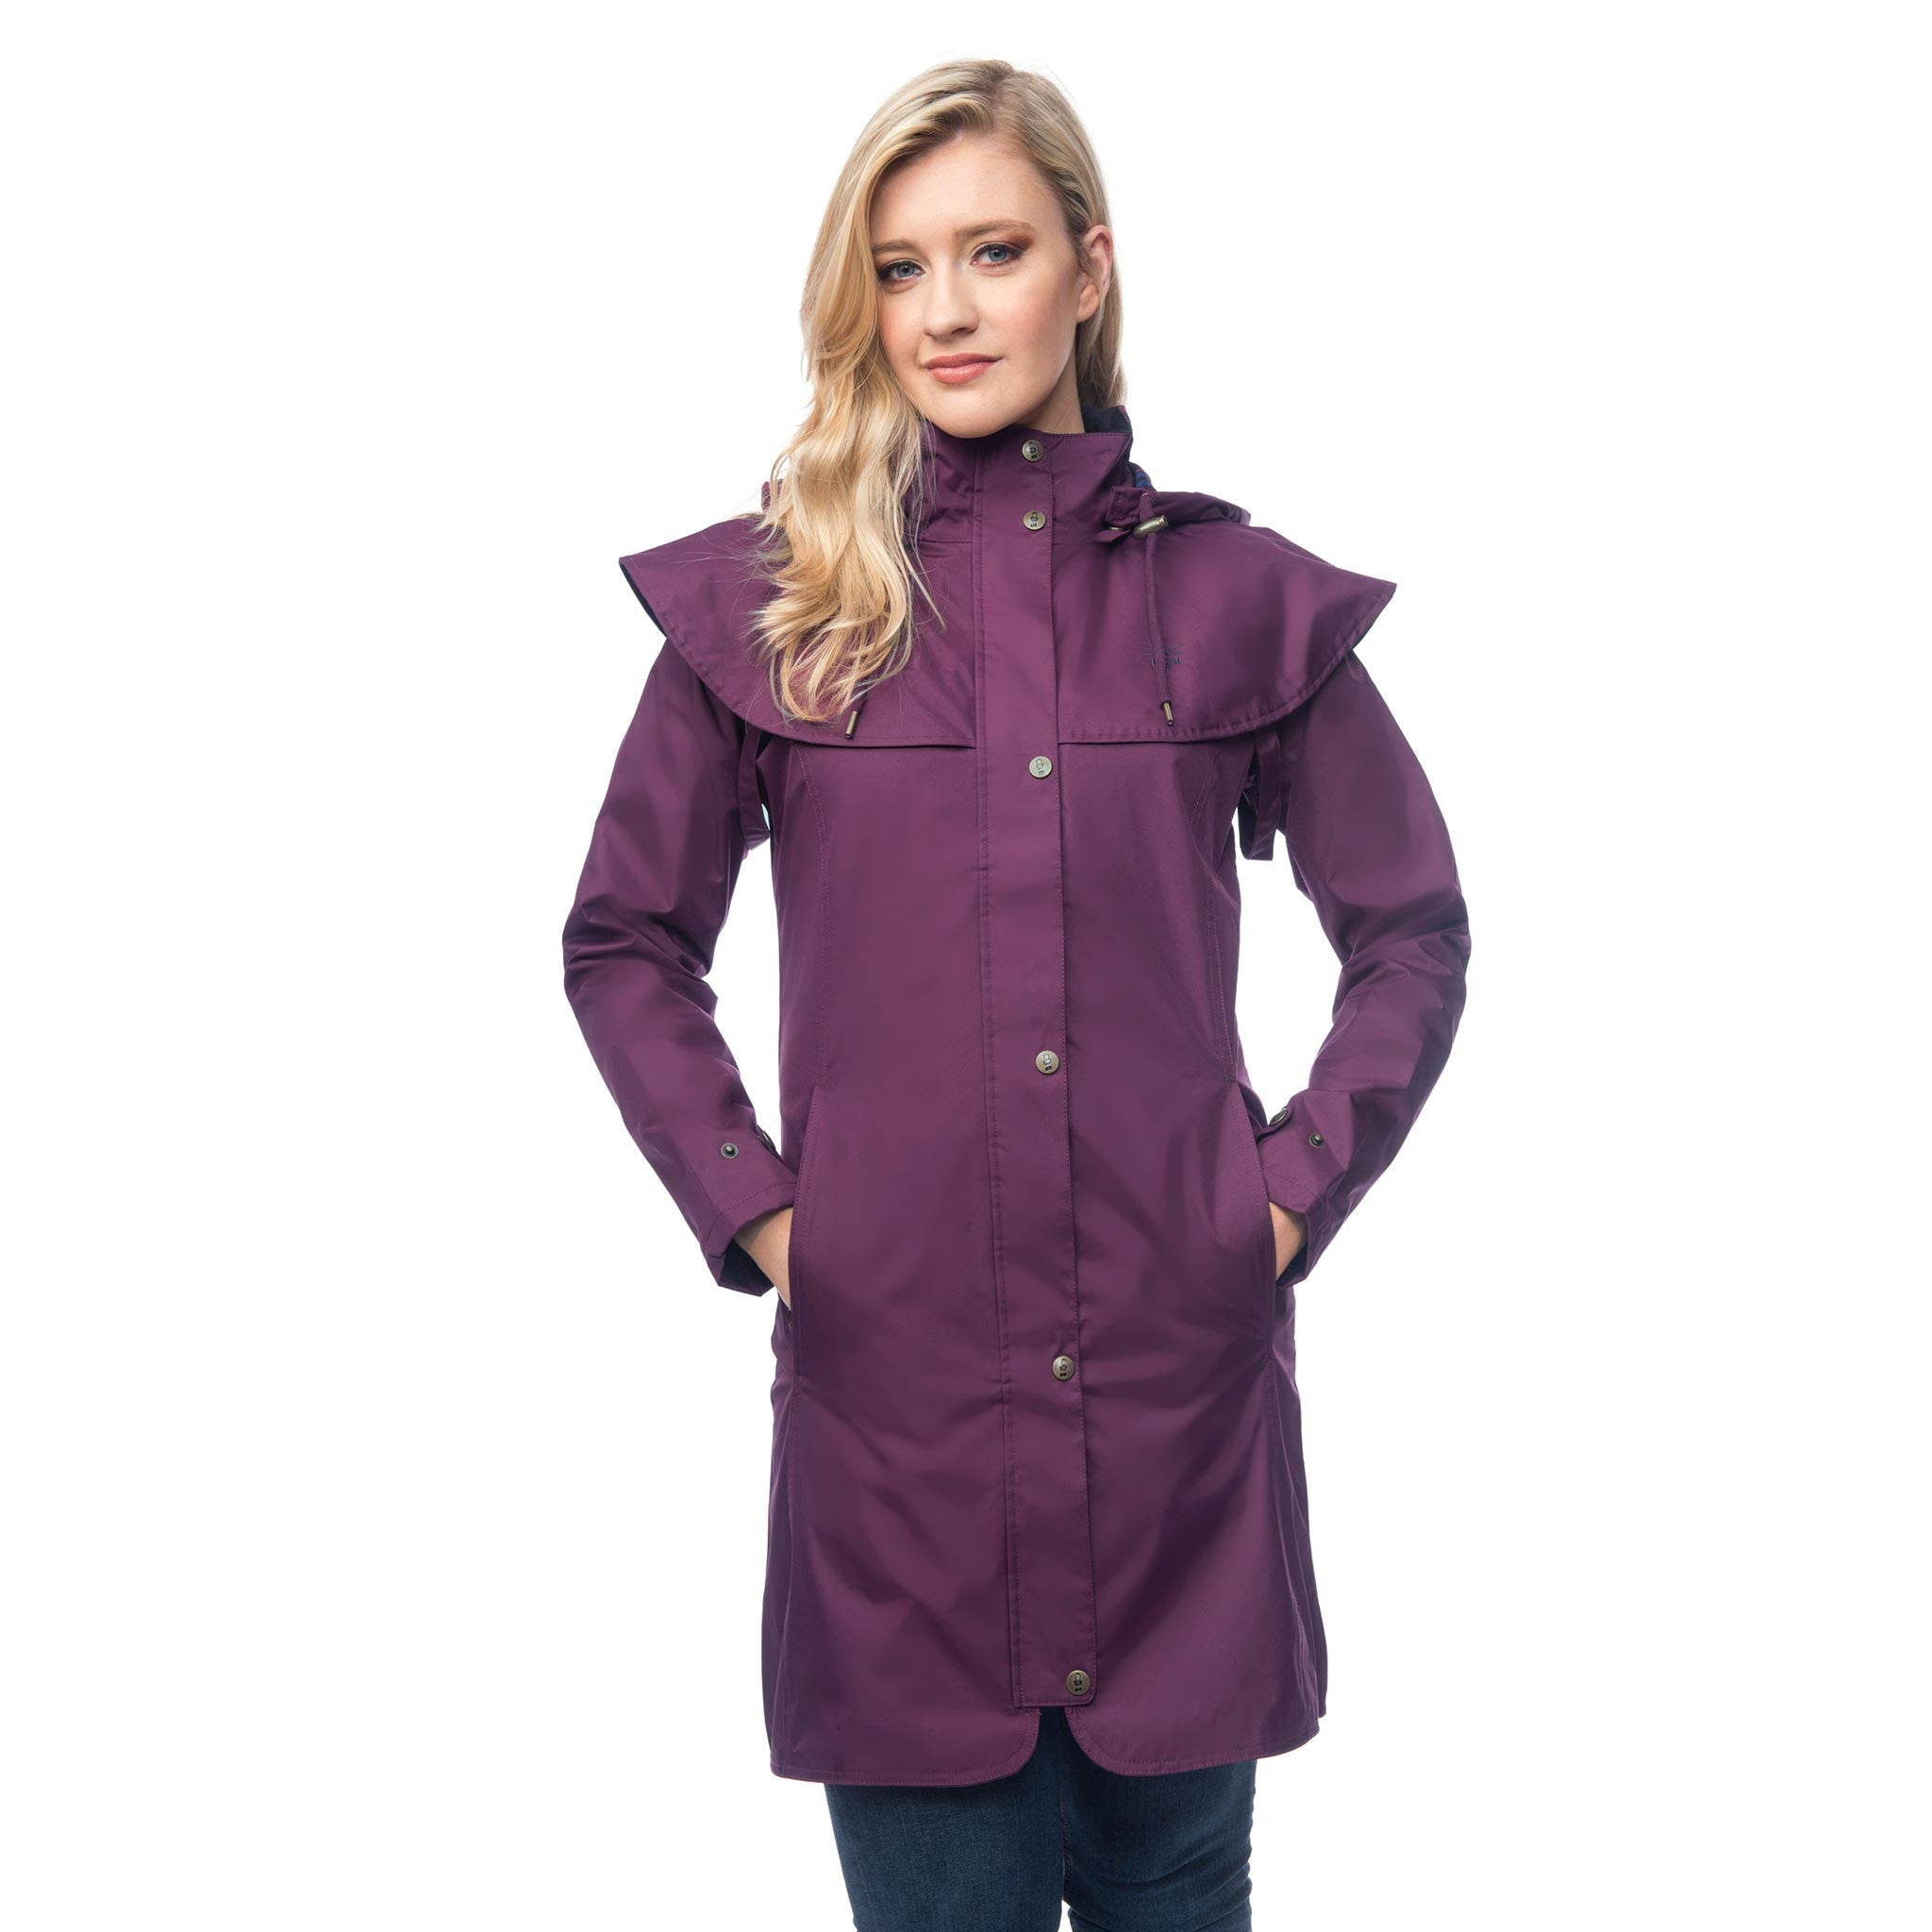 Lighthouse Womens Outrider 3/4 Length Waterproof Raincoat in Purple. Zipped & Buttoned. Hands in pockets.